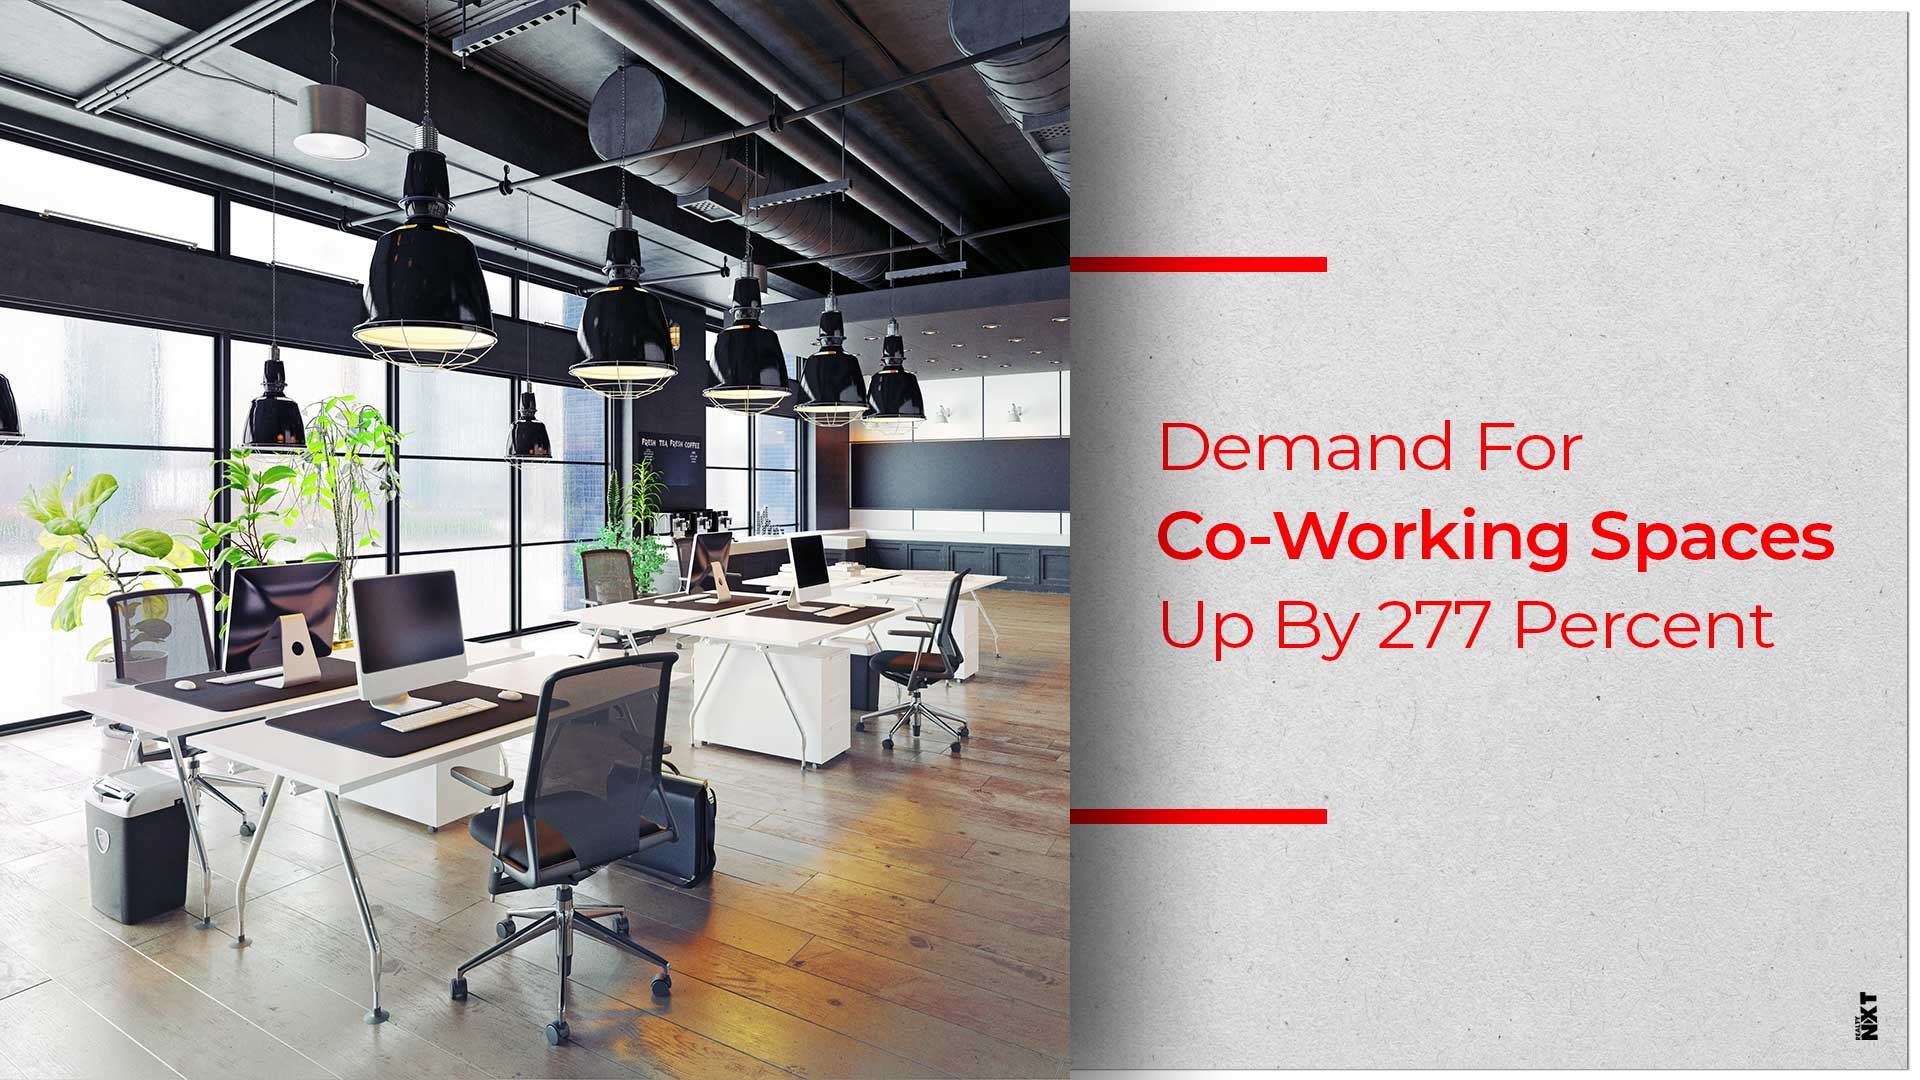 India Sees Huge Rise In Number Of Co-Working Spaces Leased